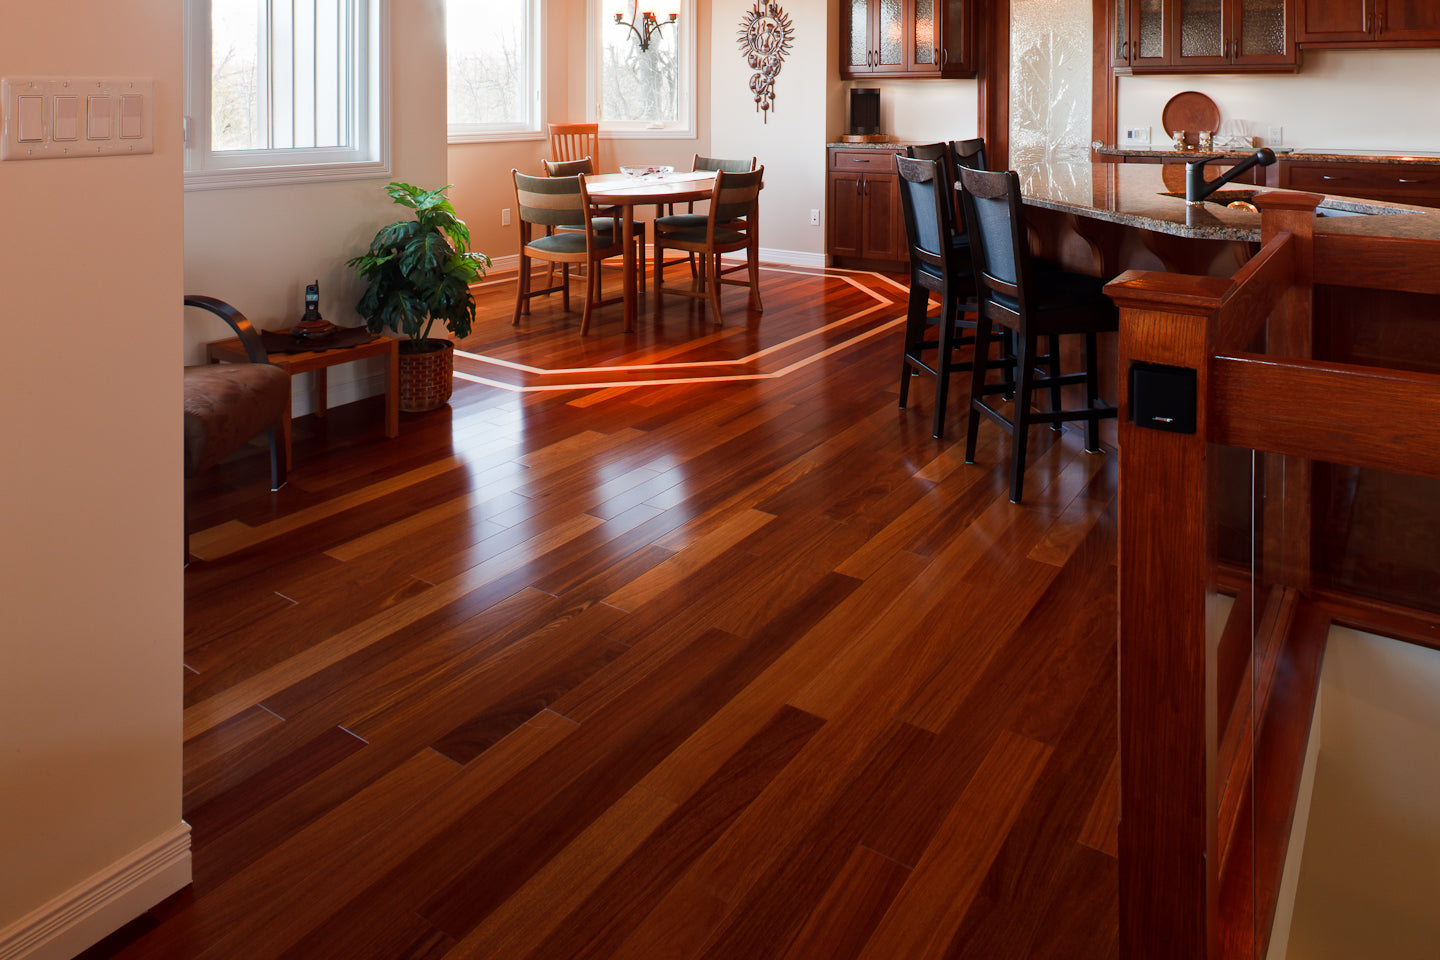 serving westminster we wood dust refinishing laminate free vancouver the all sanding floor friendly environmentally flooring engineered new and finishes areas hardwood provide of